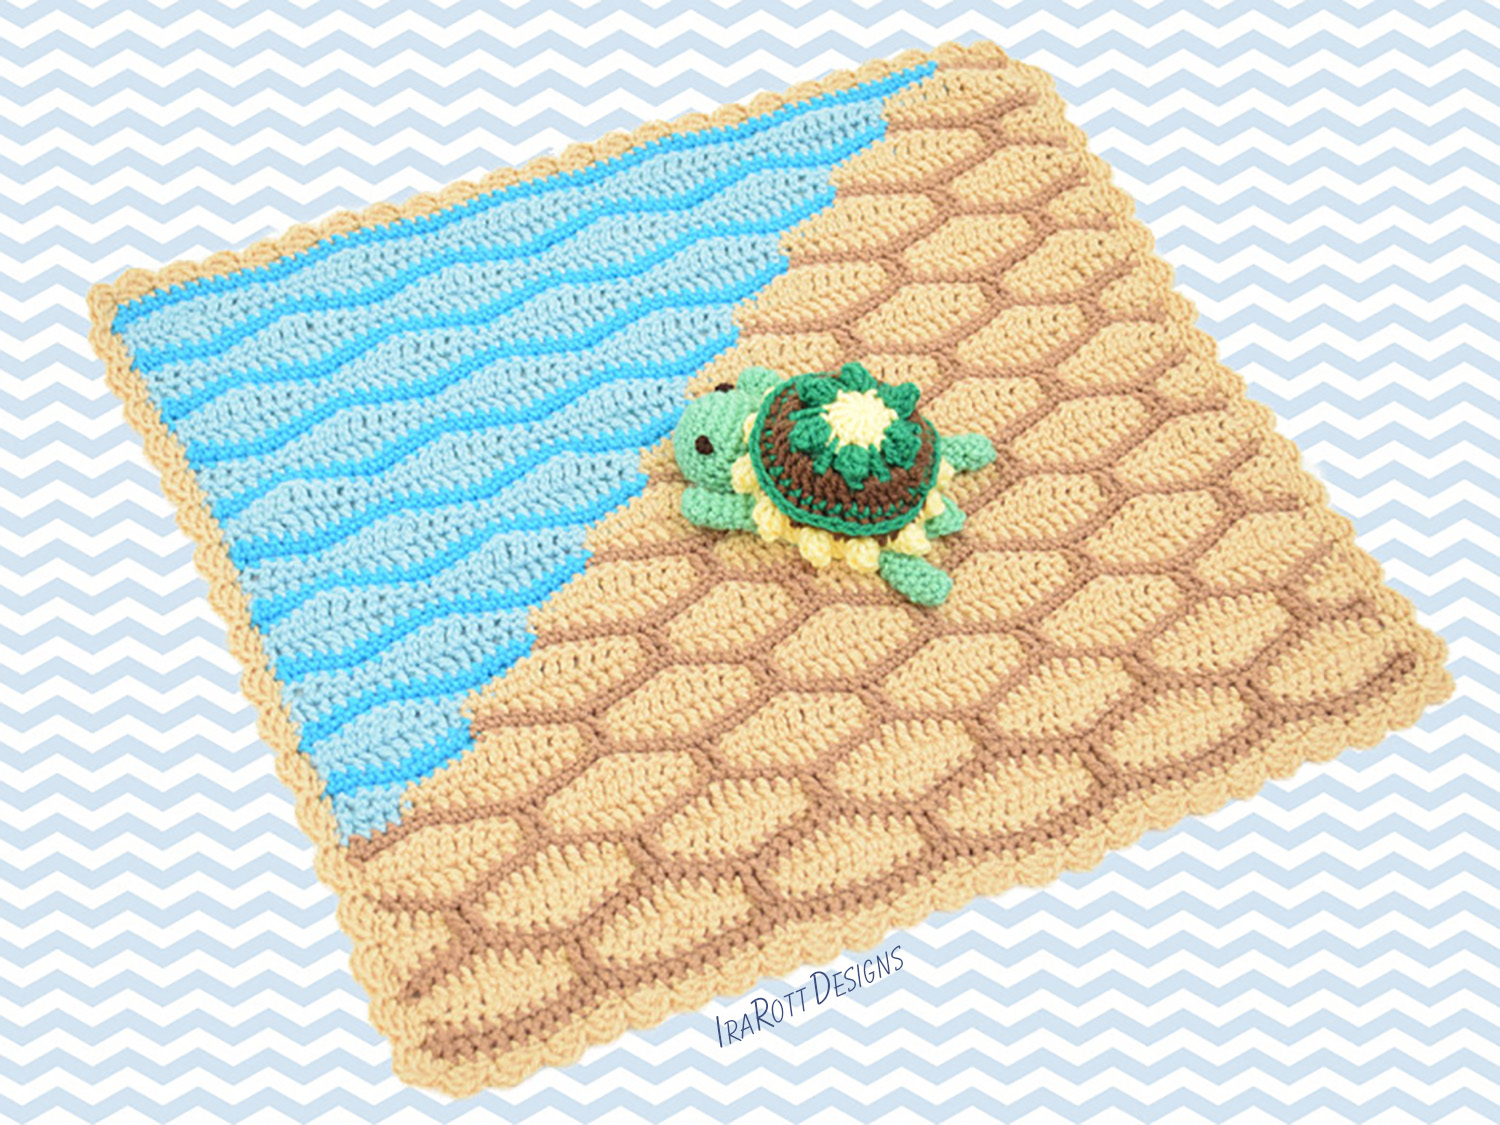 Bubbles The Turtle Security Blanket PDF Crochet Pattern With Instant Download by IraRott